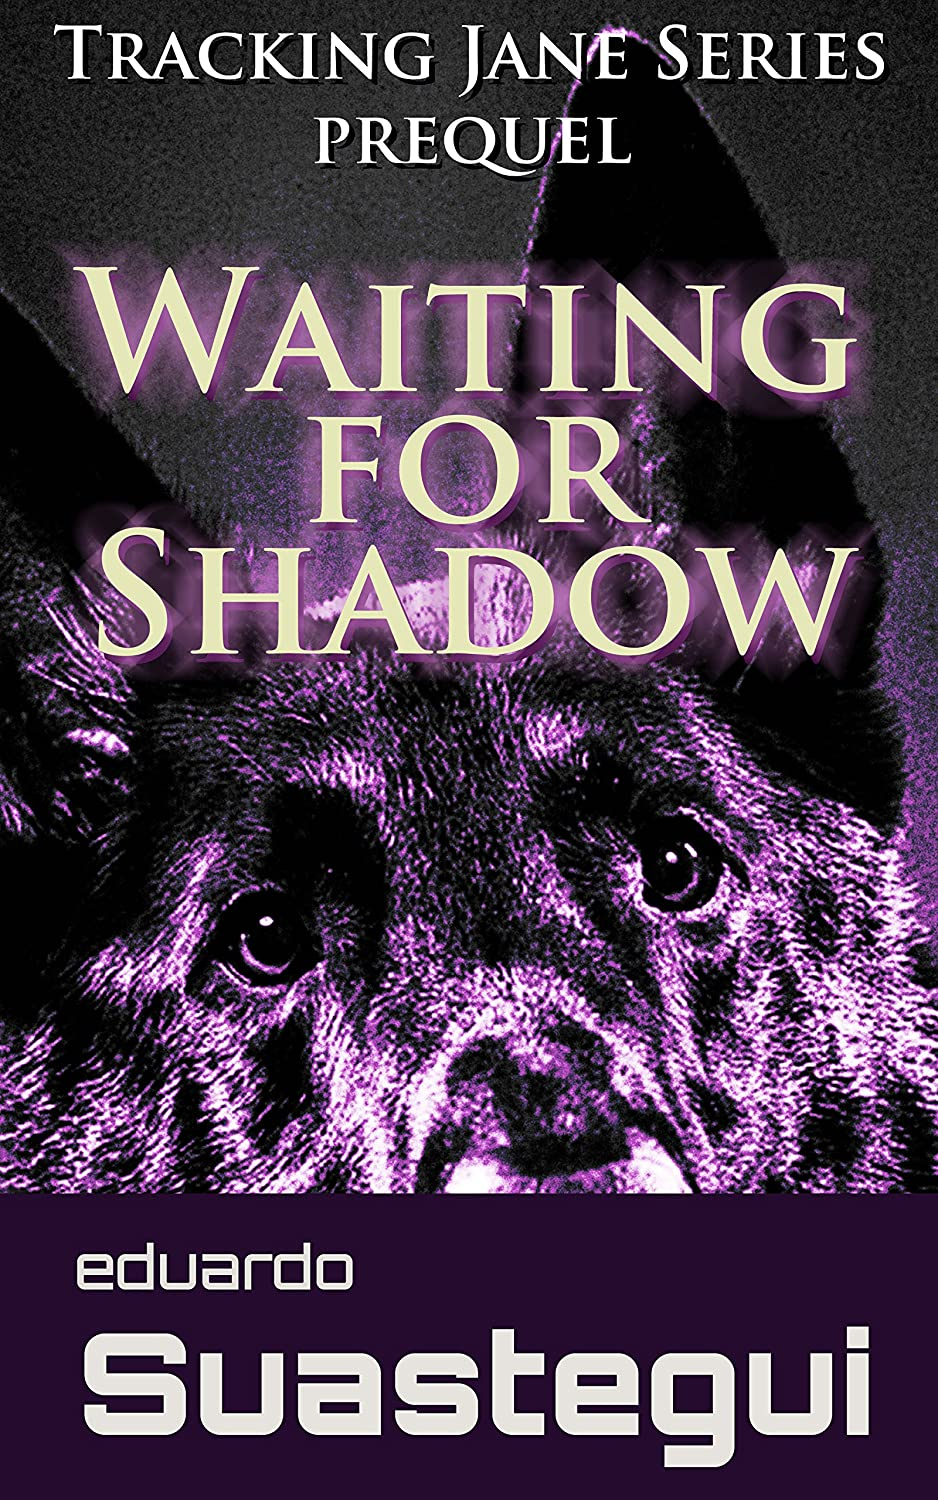 Waiting for Shadow: Tracking Jane, prequel by Eduardo Suastegui